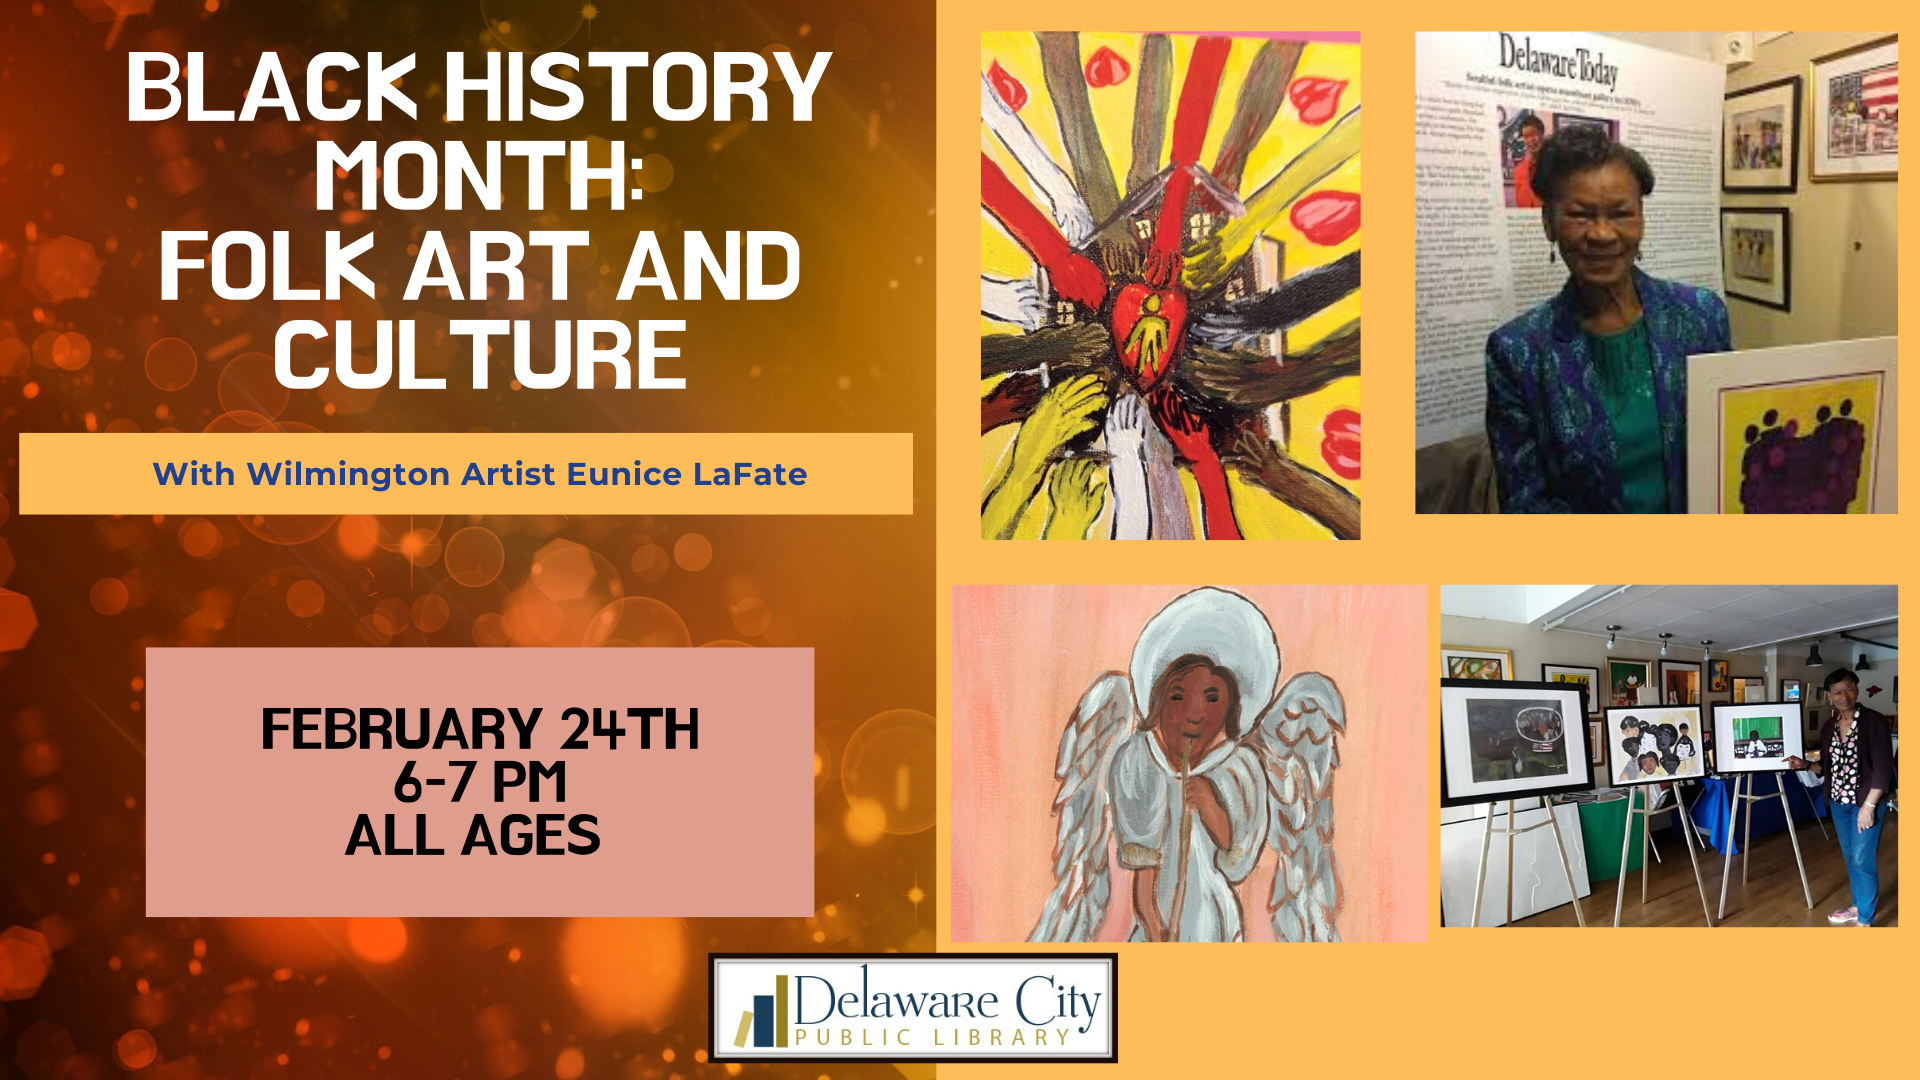 Black History Month: Folk Art and Culture